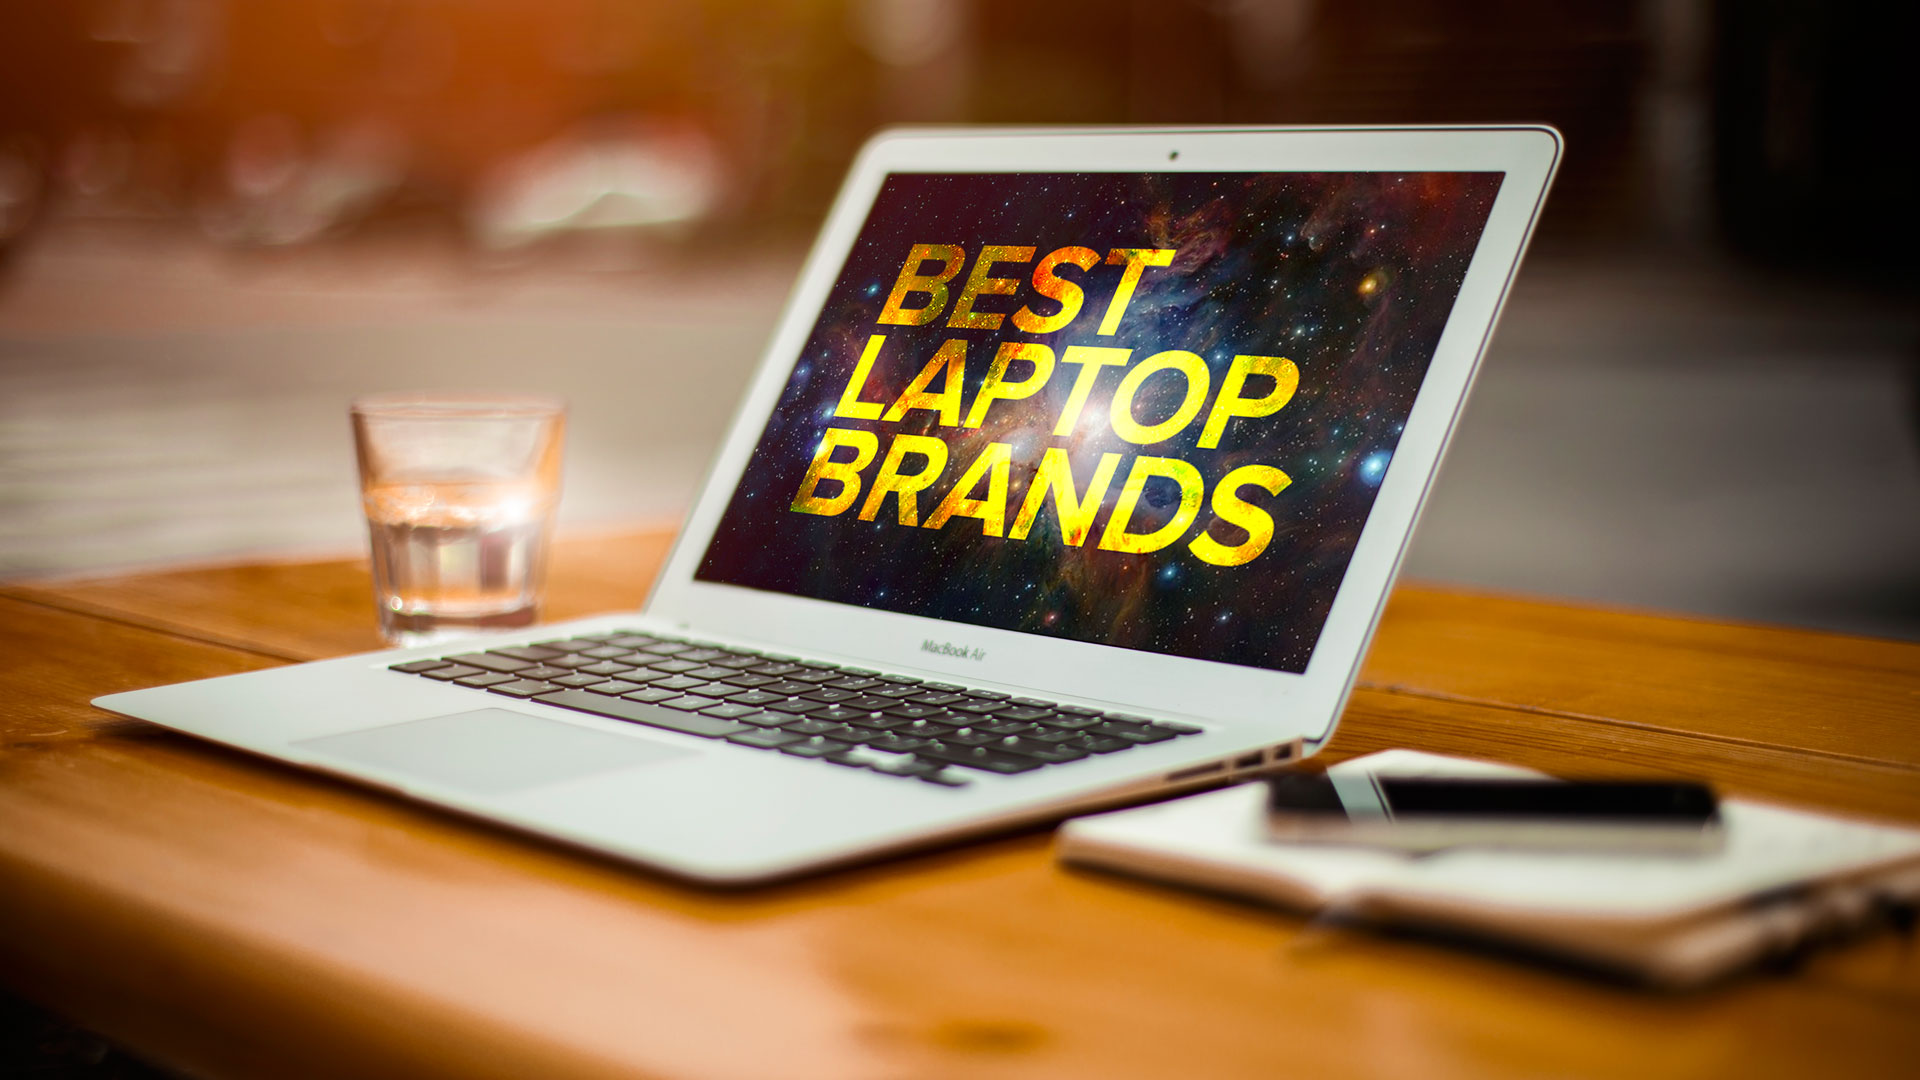 Best Laptop Brands